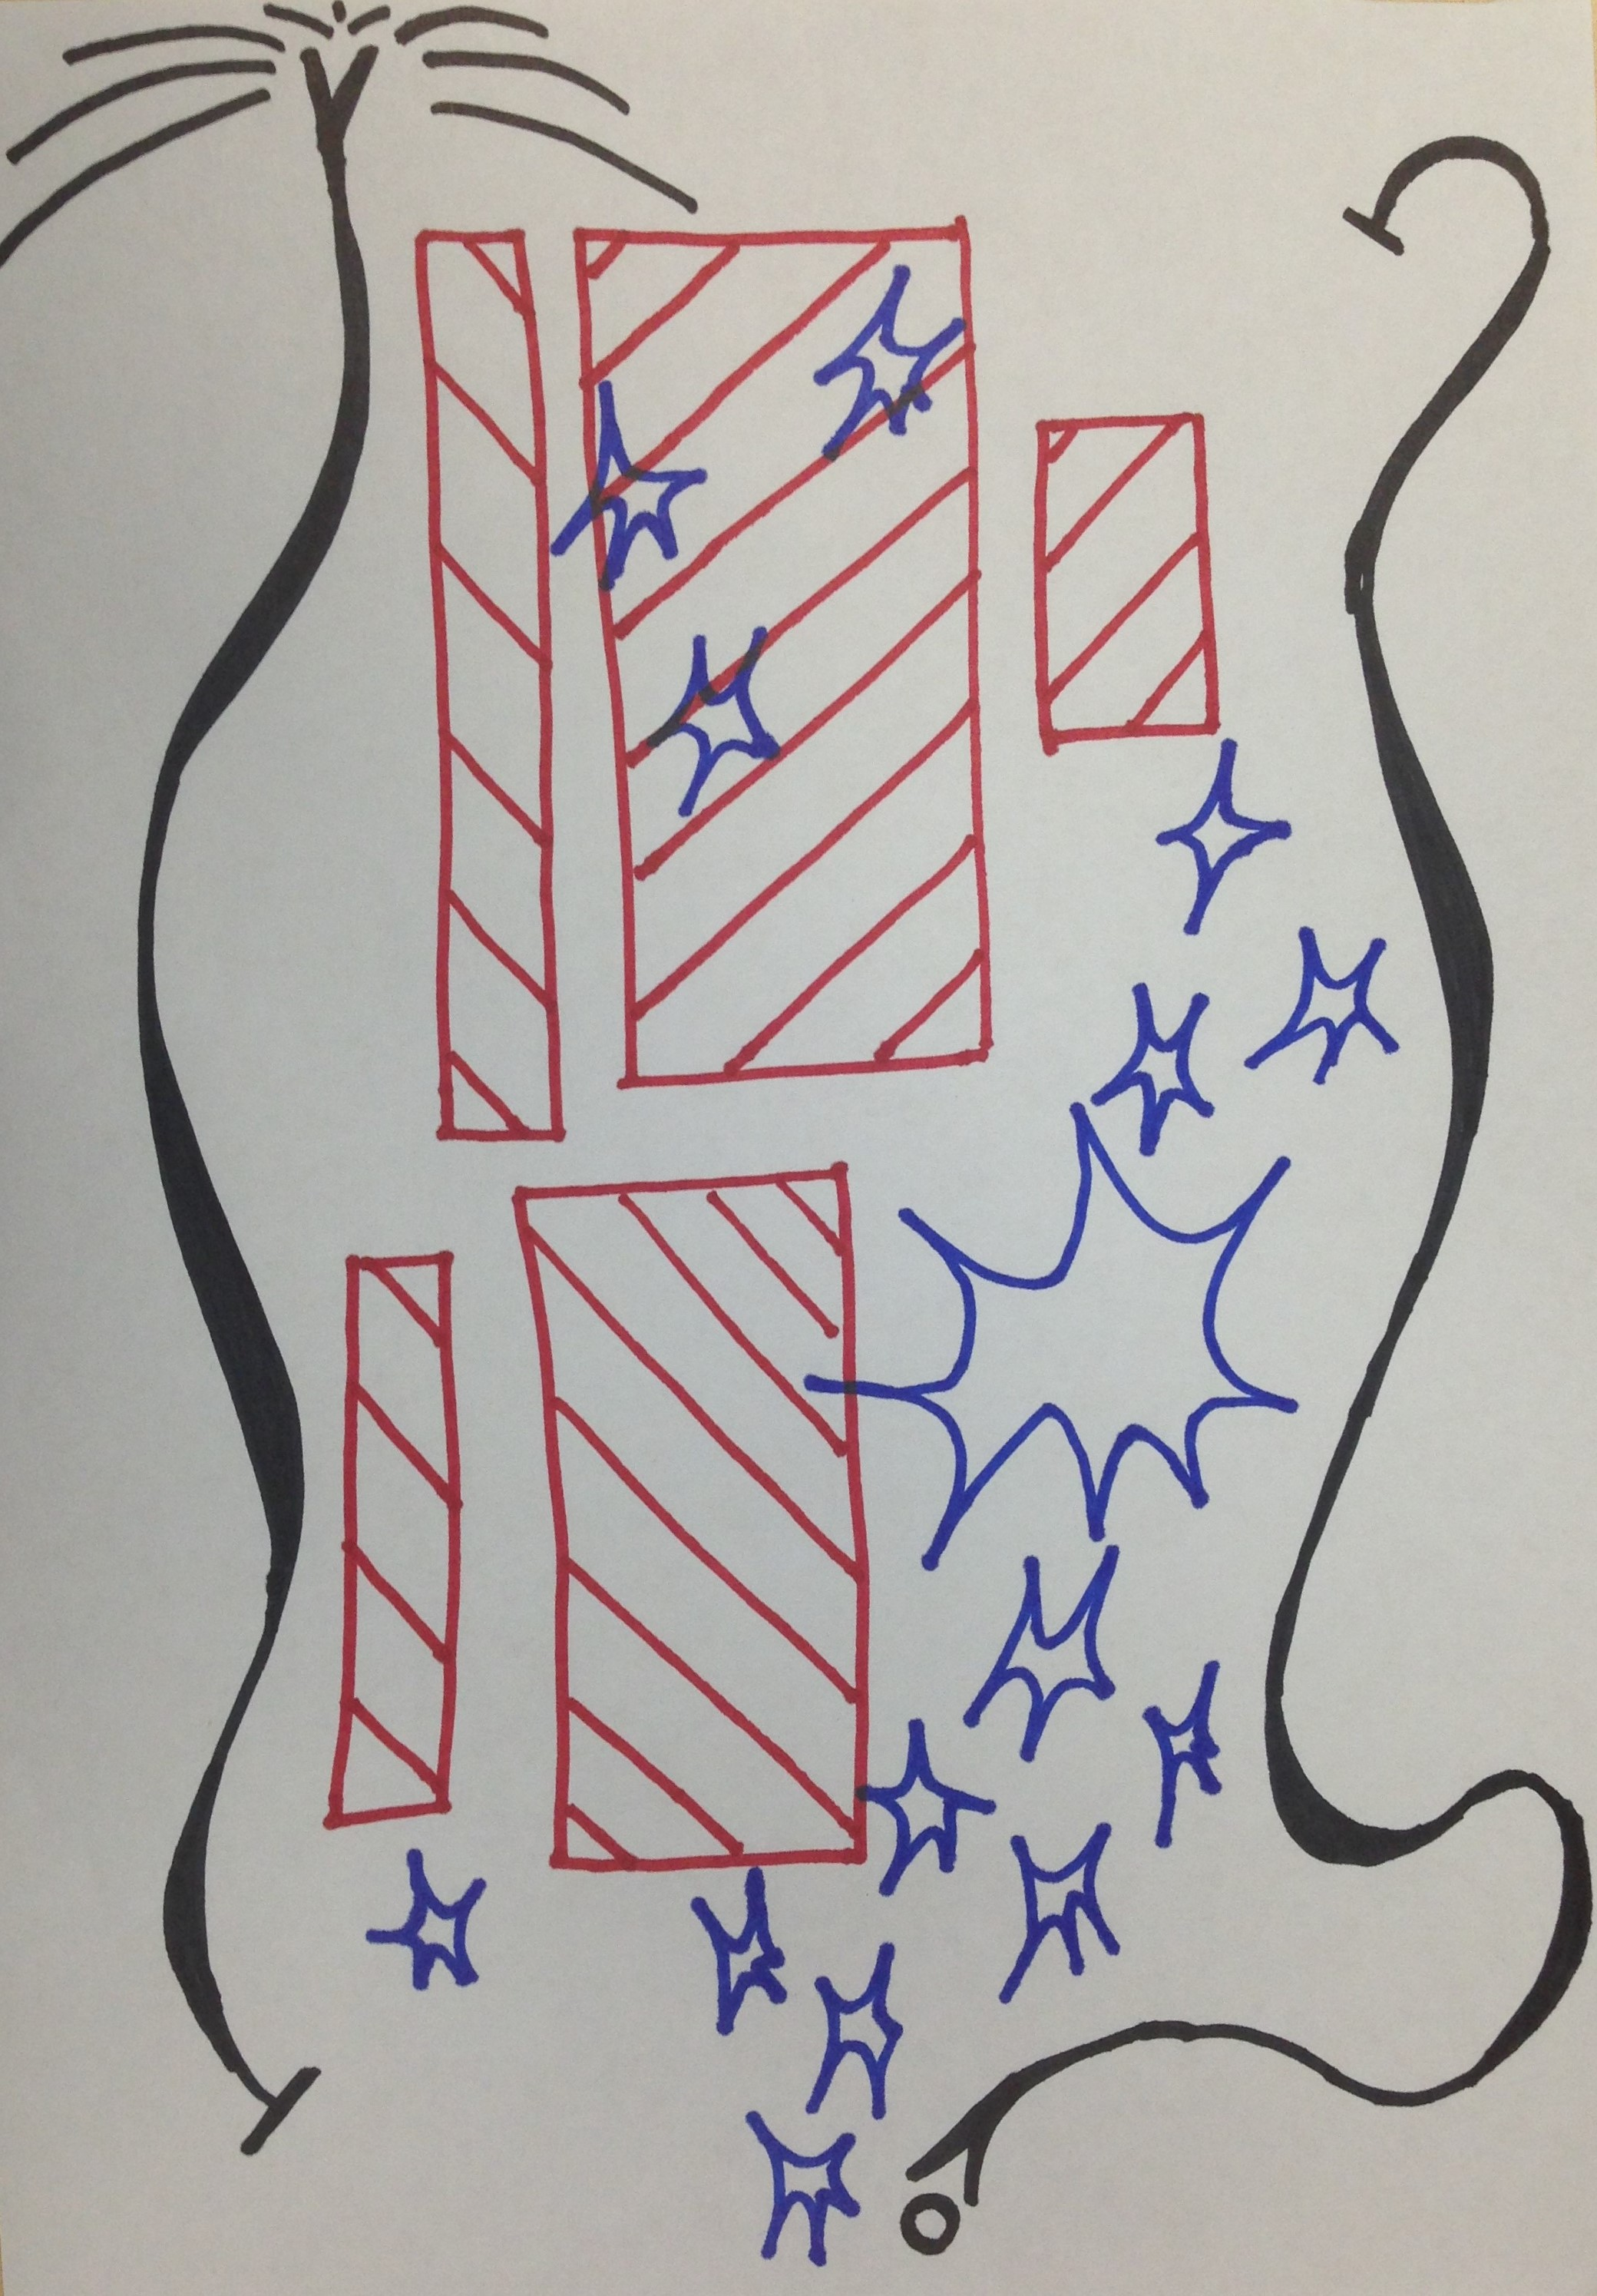 Drawing with red locks, blue flashes and two long black thick curly lines.